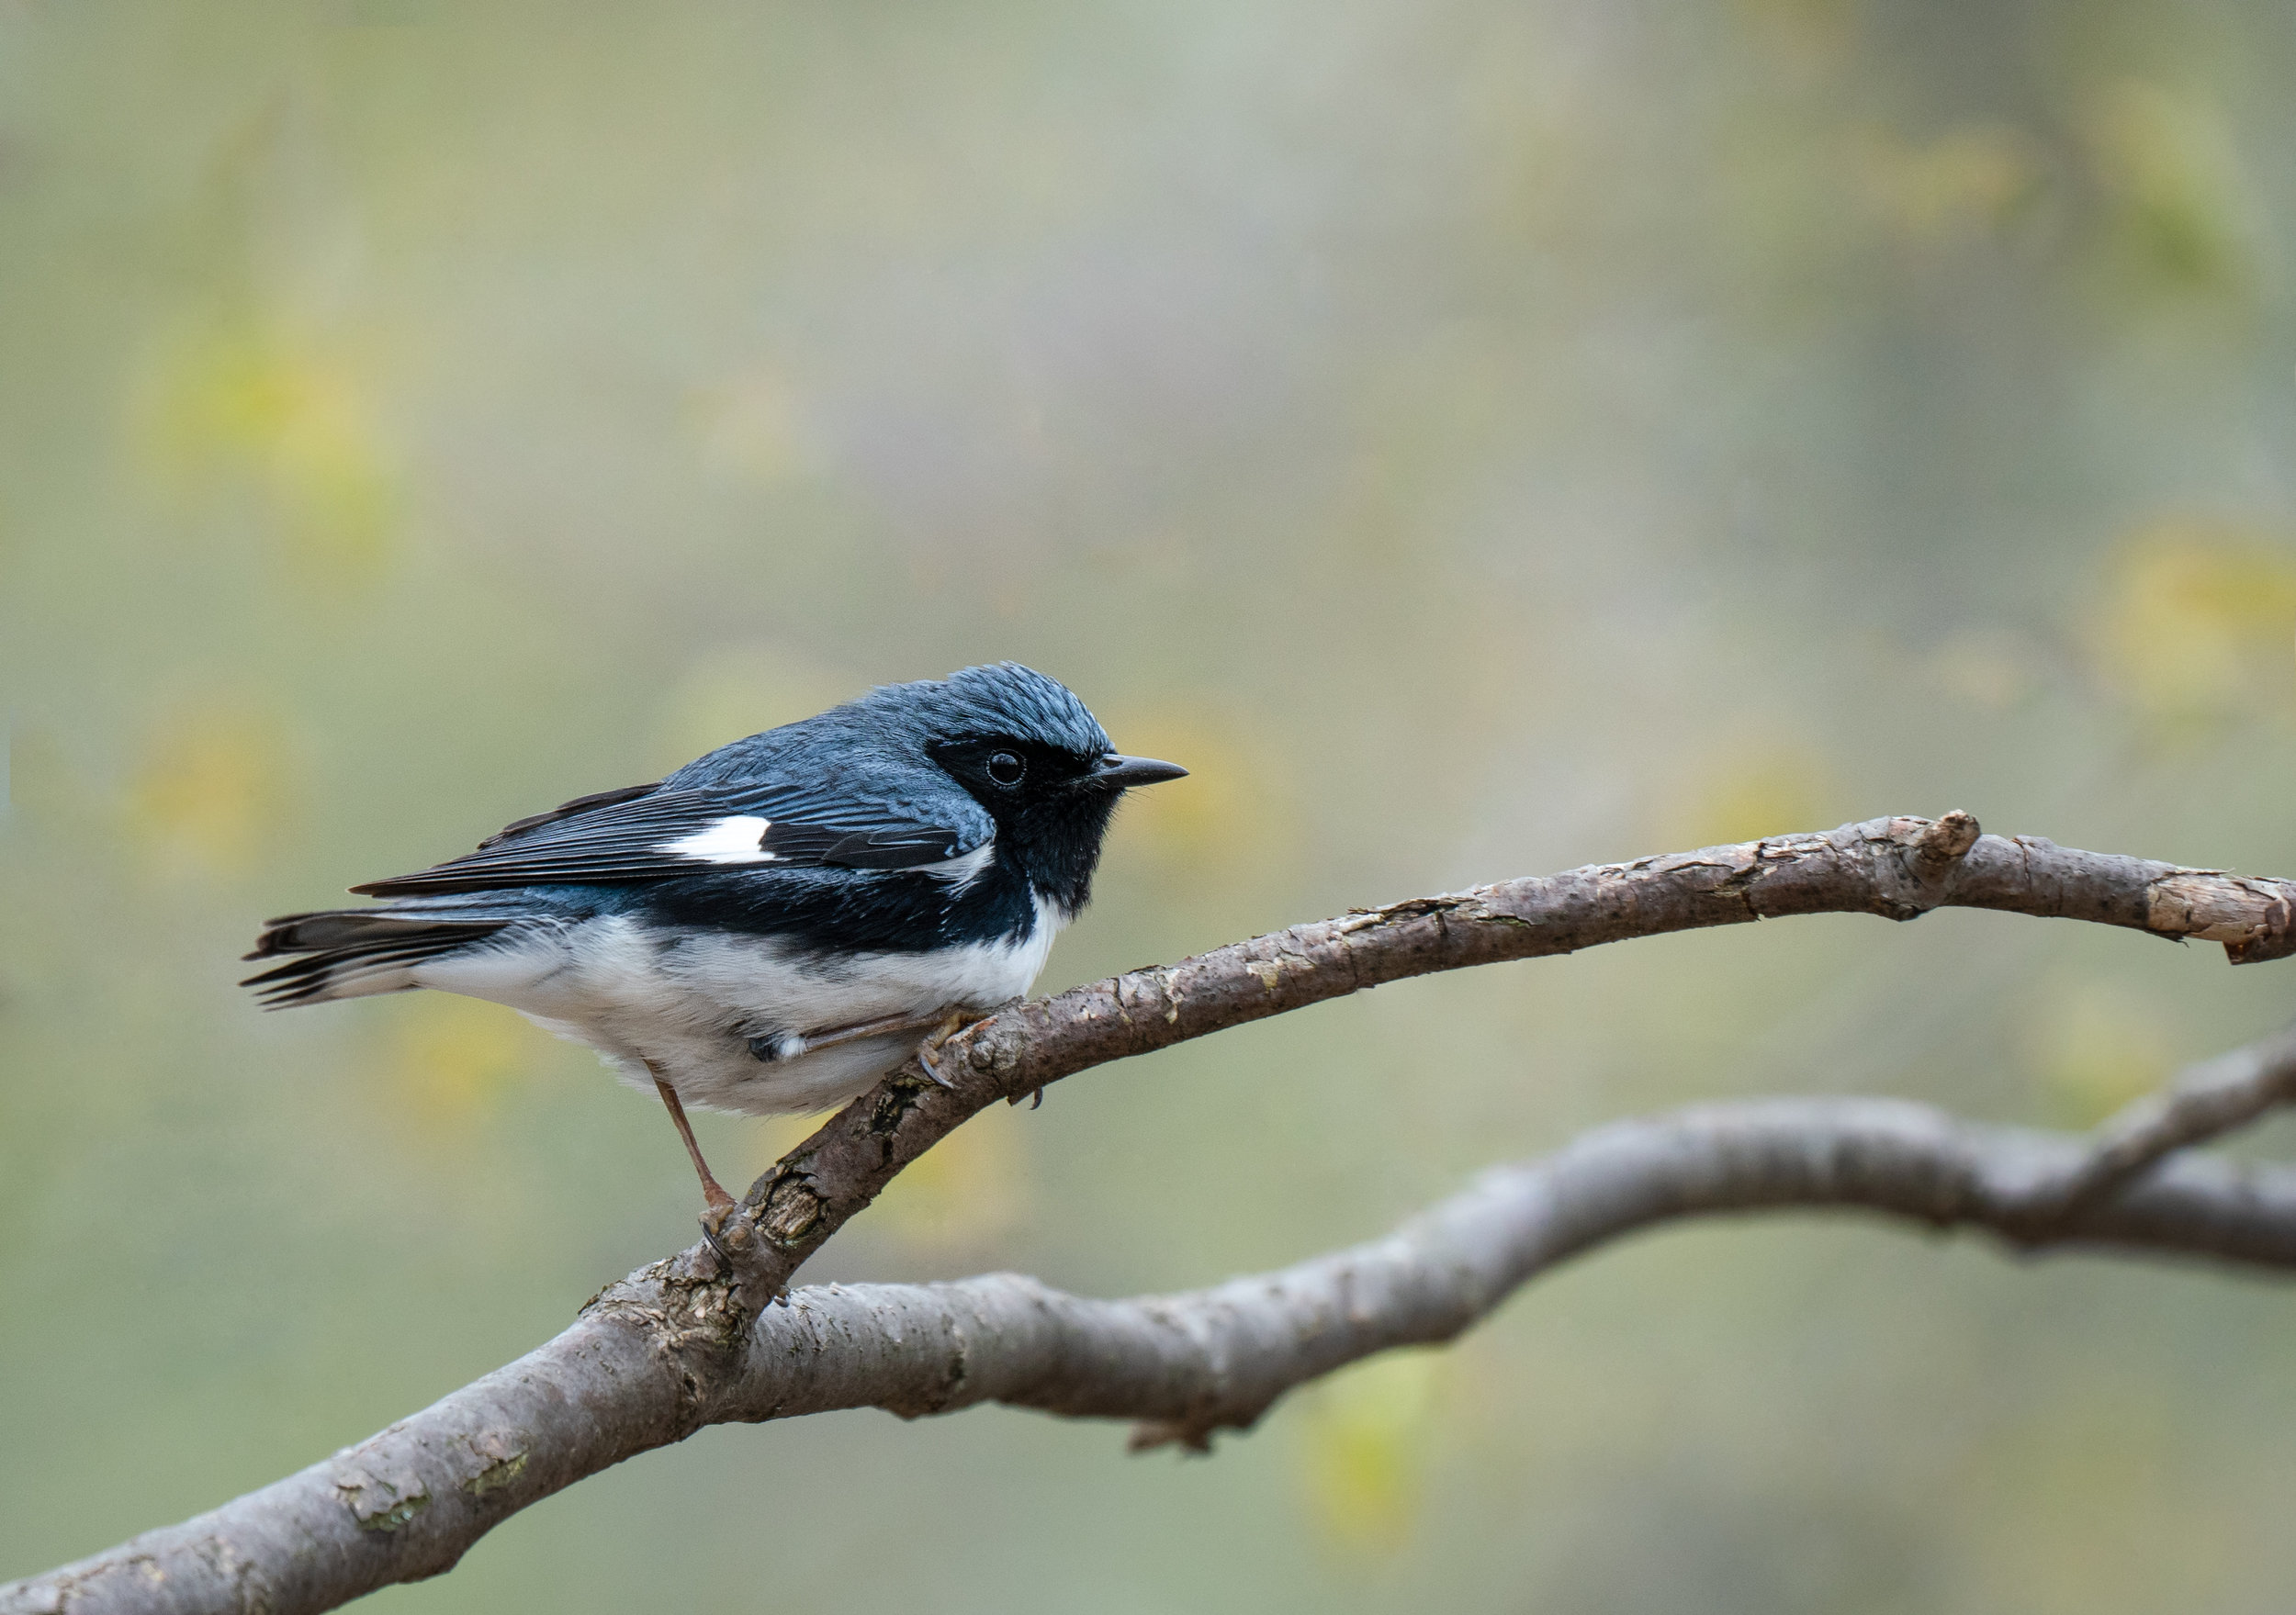 Always a striking bitd - a Black Throated Blue Warbler